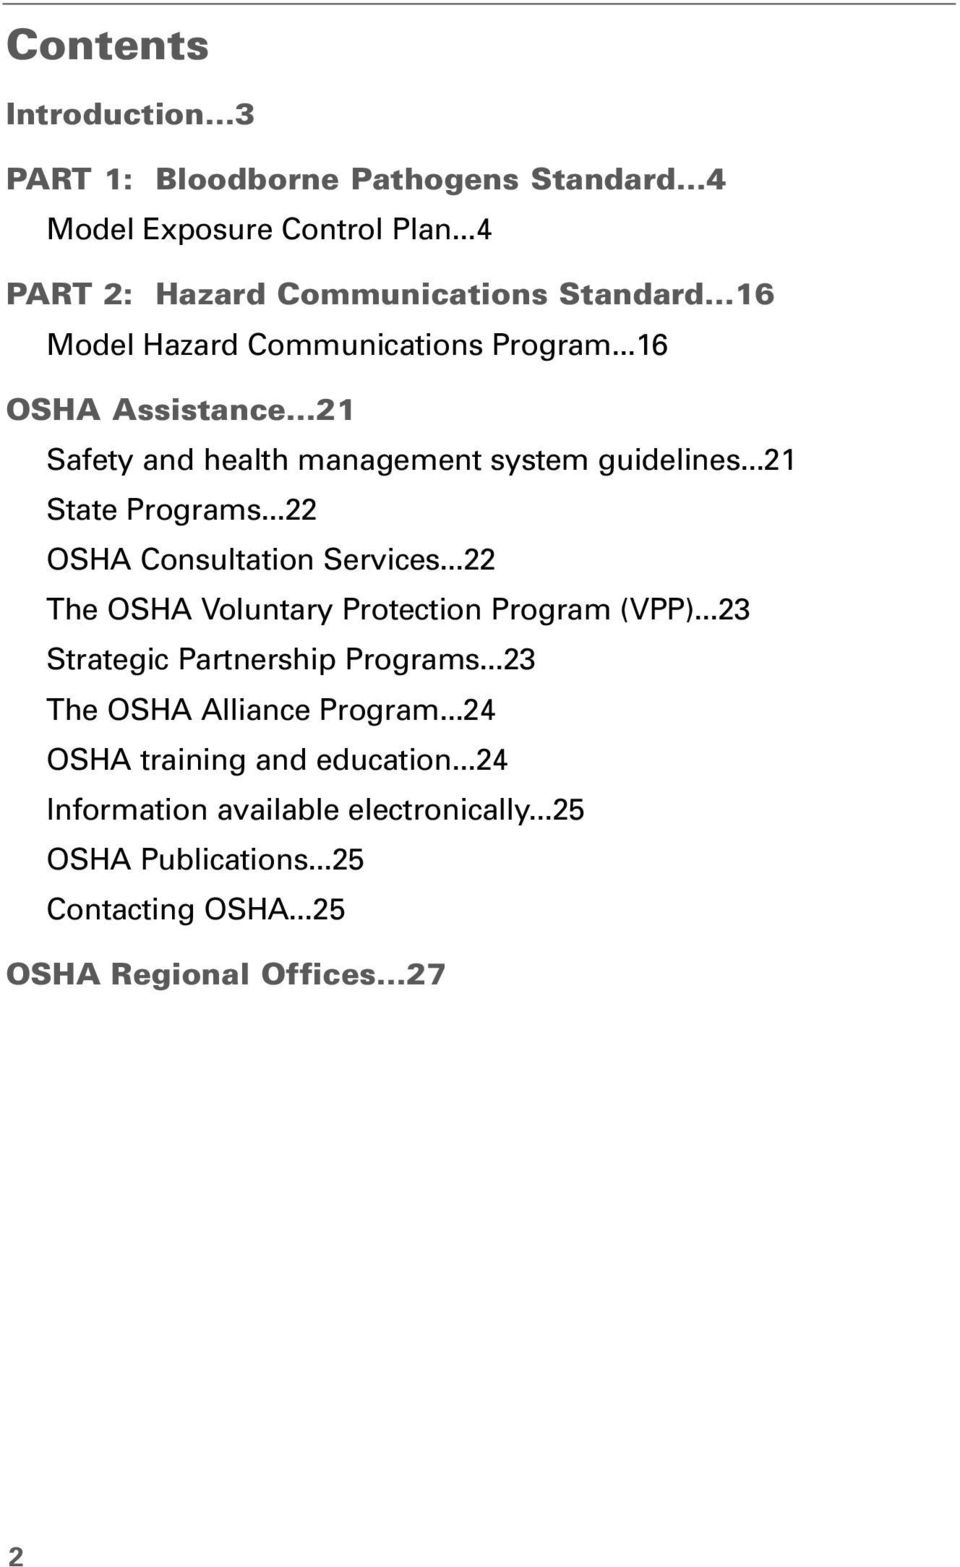 ..22 OSHA Consultation Services...22 The OSHA Voluntary Protection Program (VPP)...23 Strategic Partnership Programs.